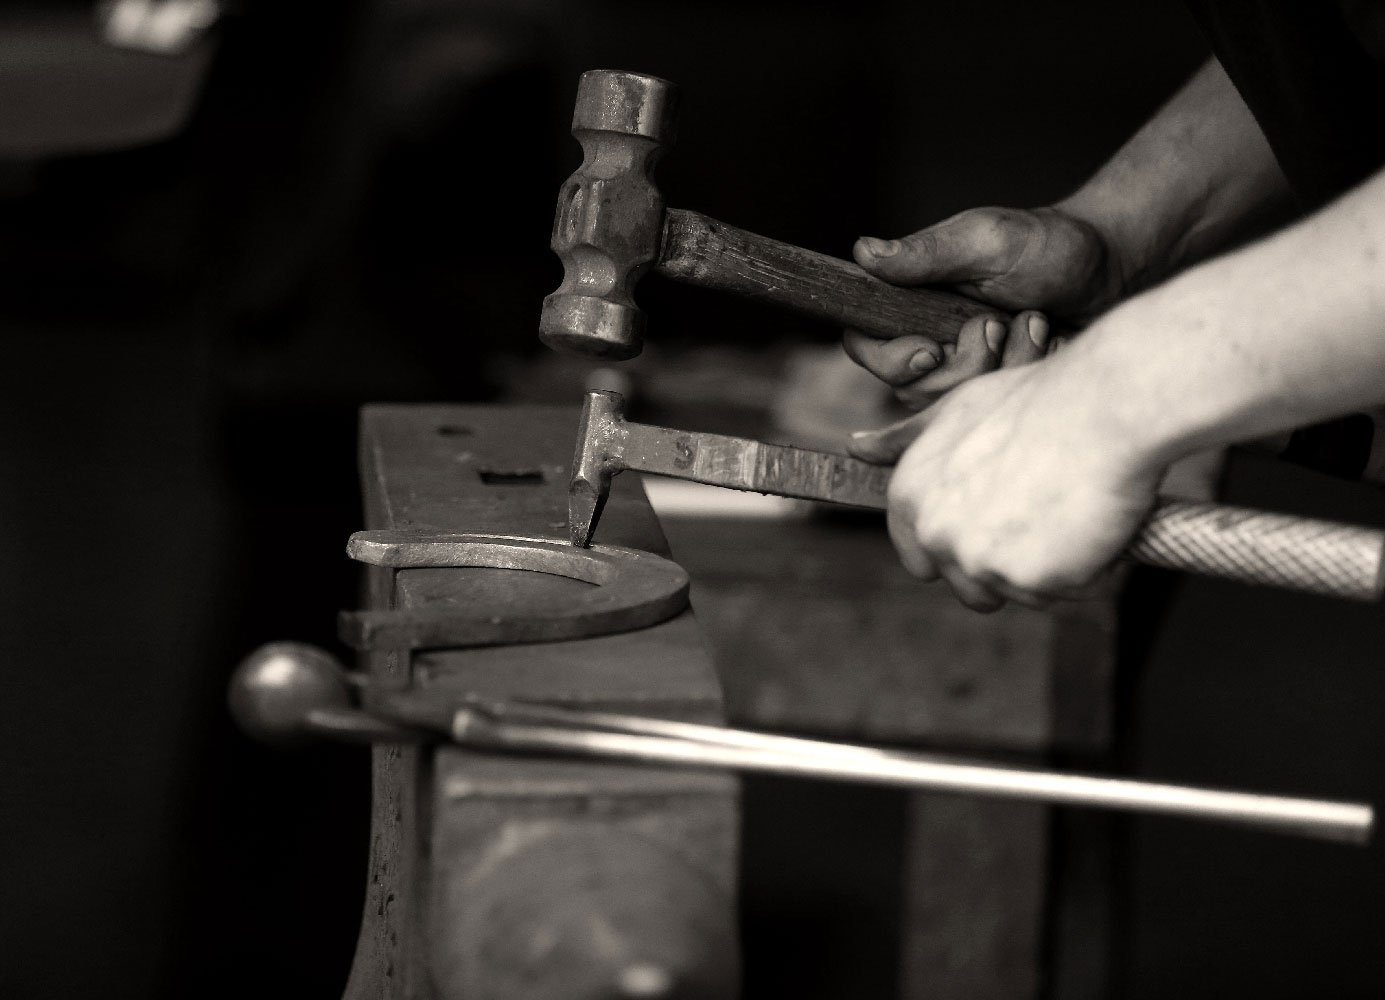 Student Farriers working at the Farriery Ireland Forge, The Curragh, Co.Kildare